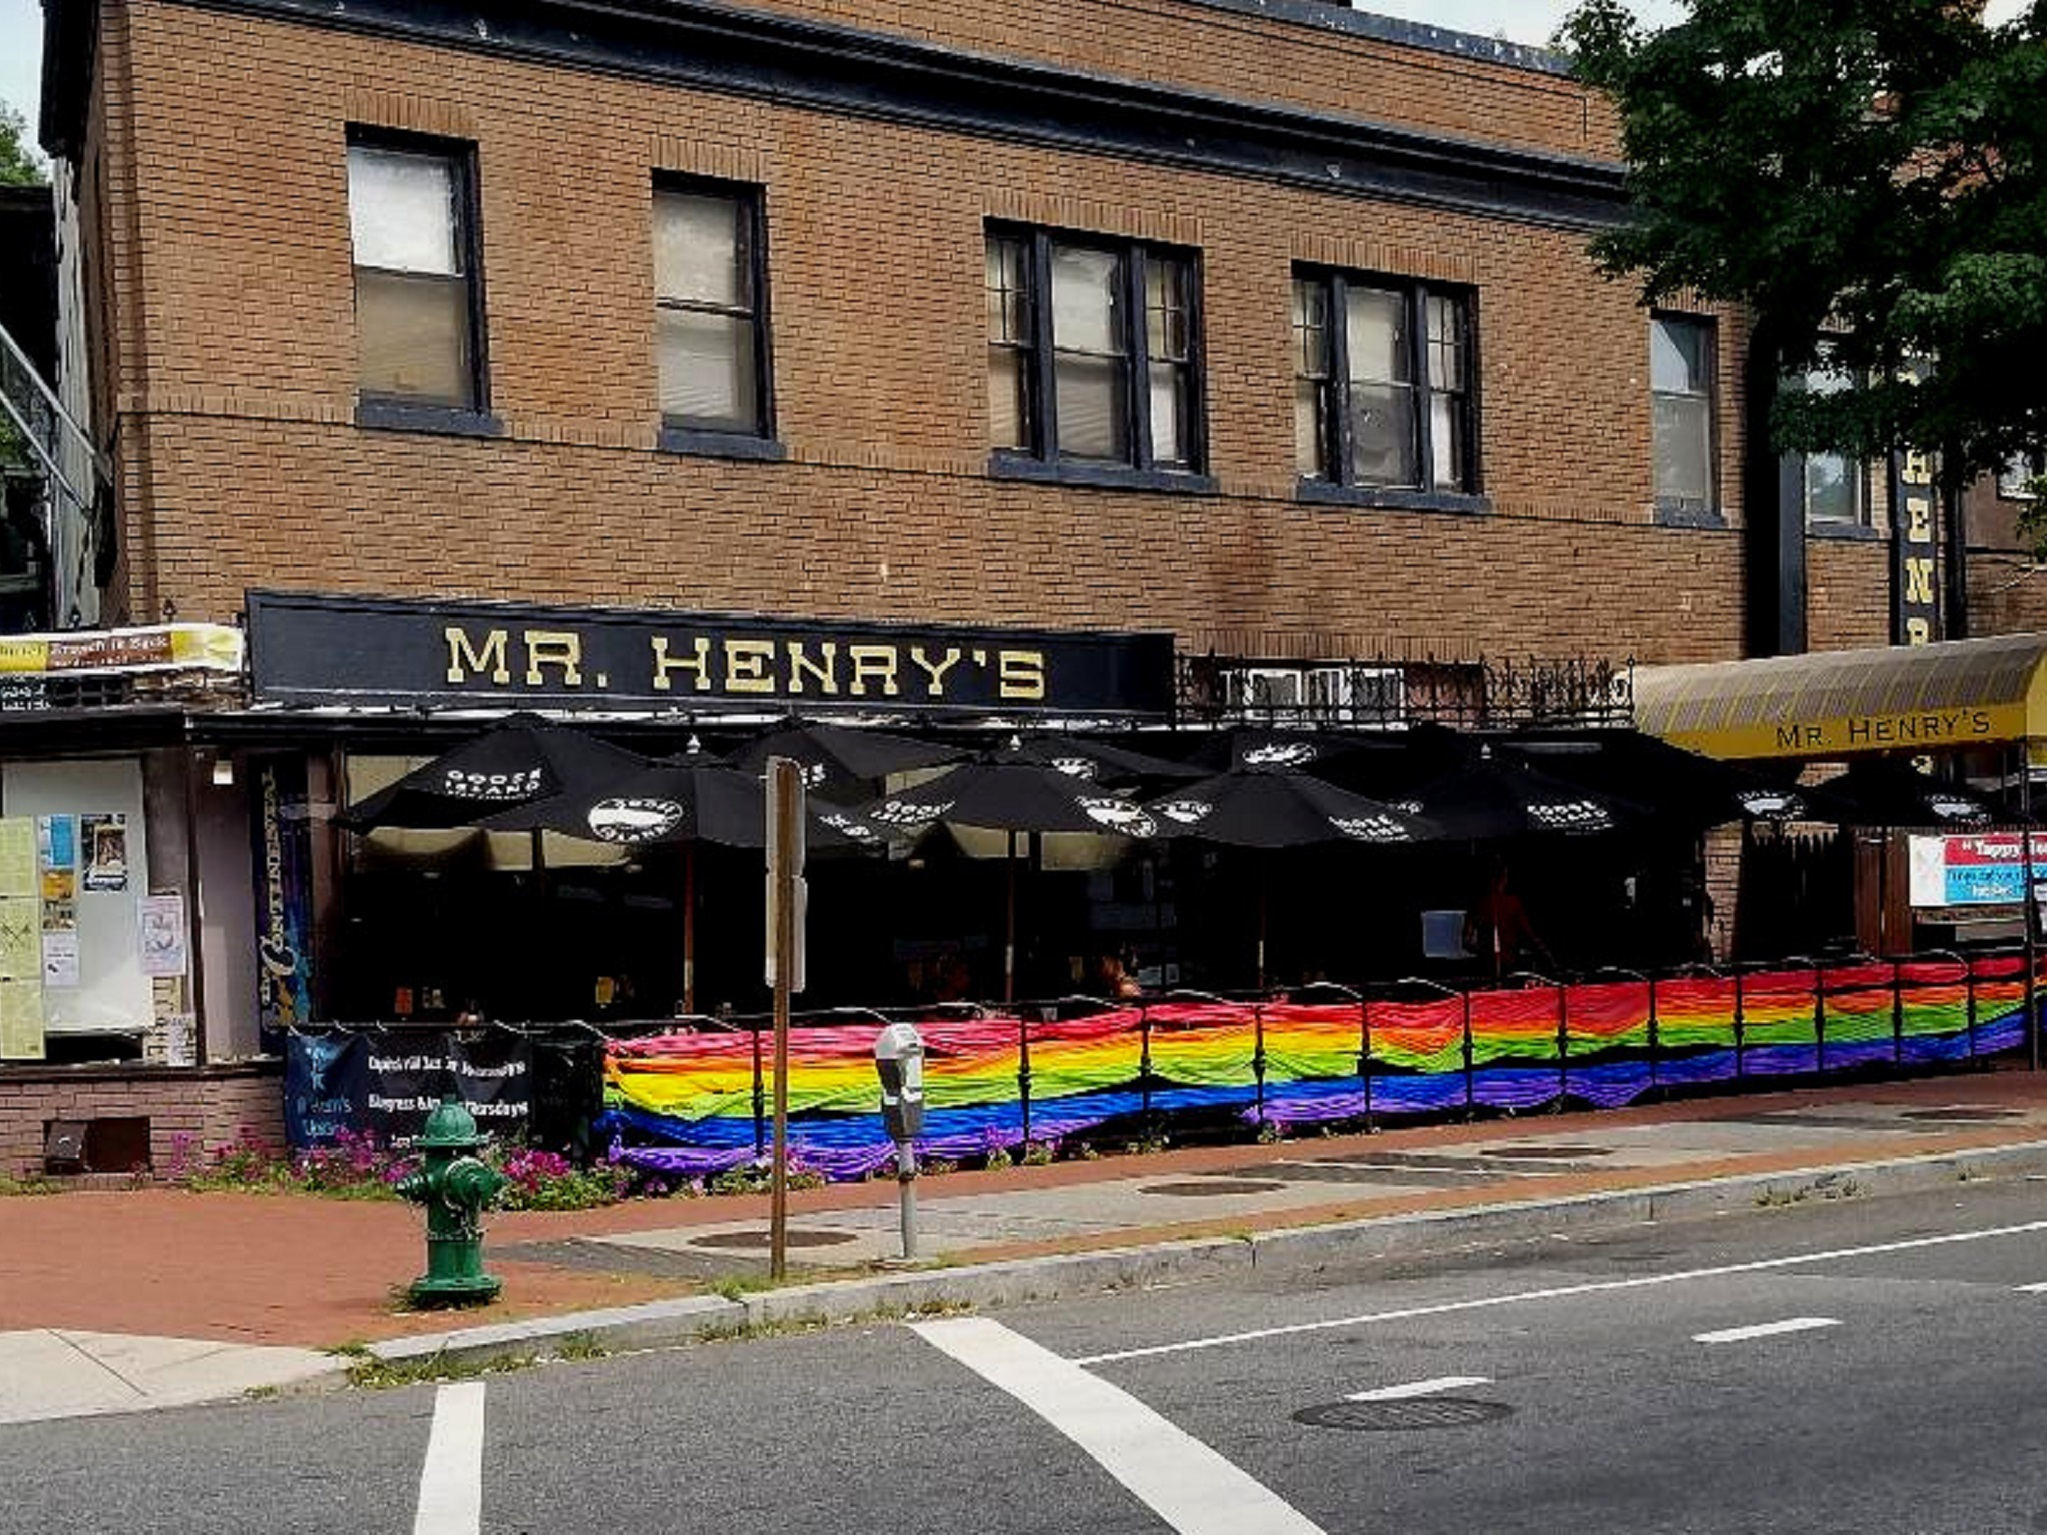 The outside of Mr. Henry's